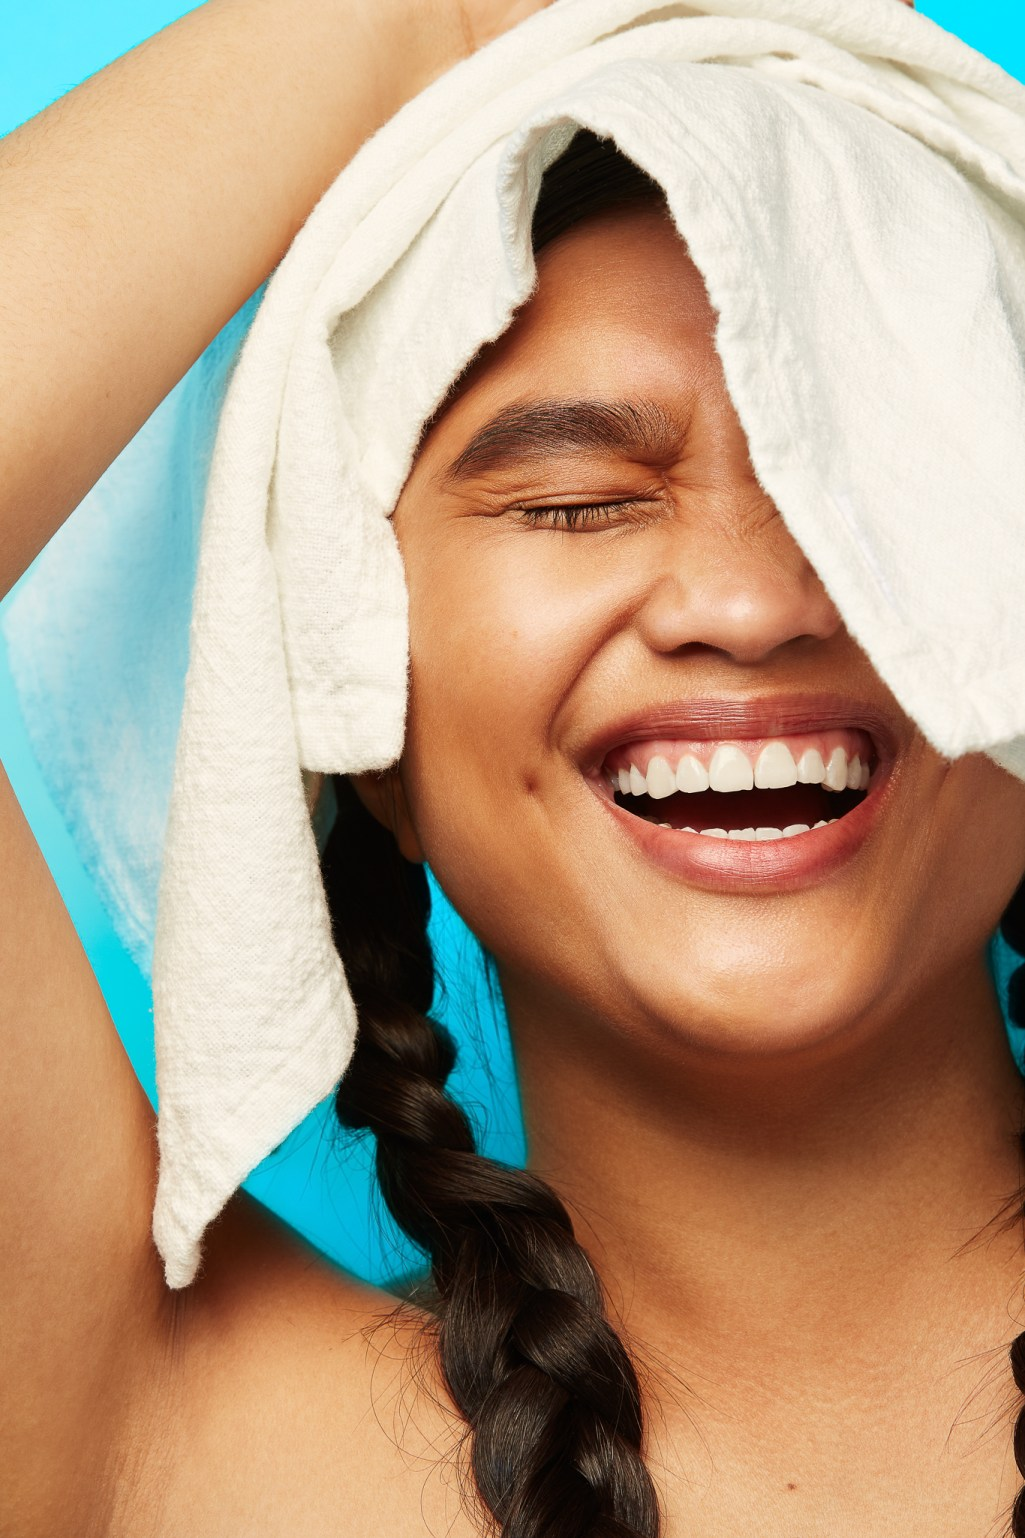 Beauty portrait of woman laughing with linen laundry by San Francisco Photographer Ella Sophie